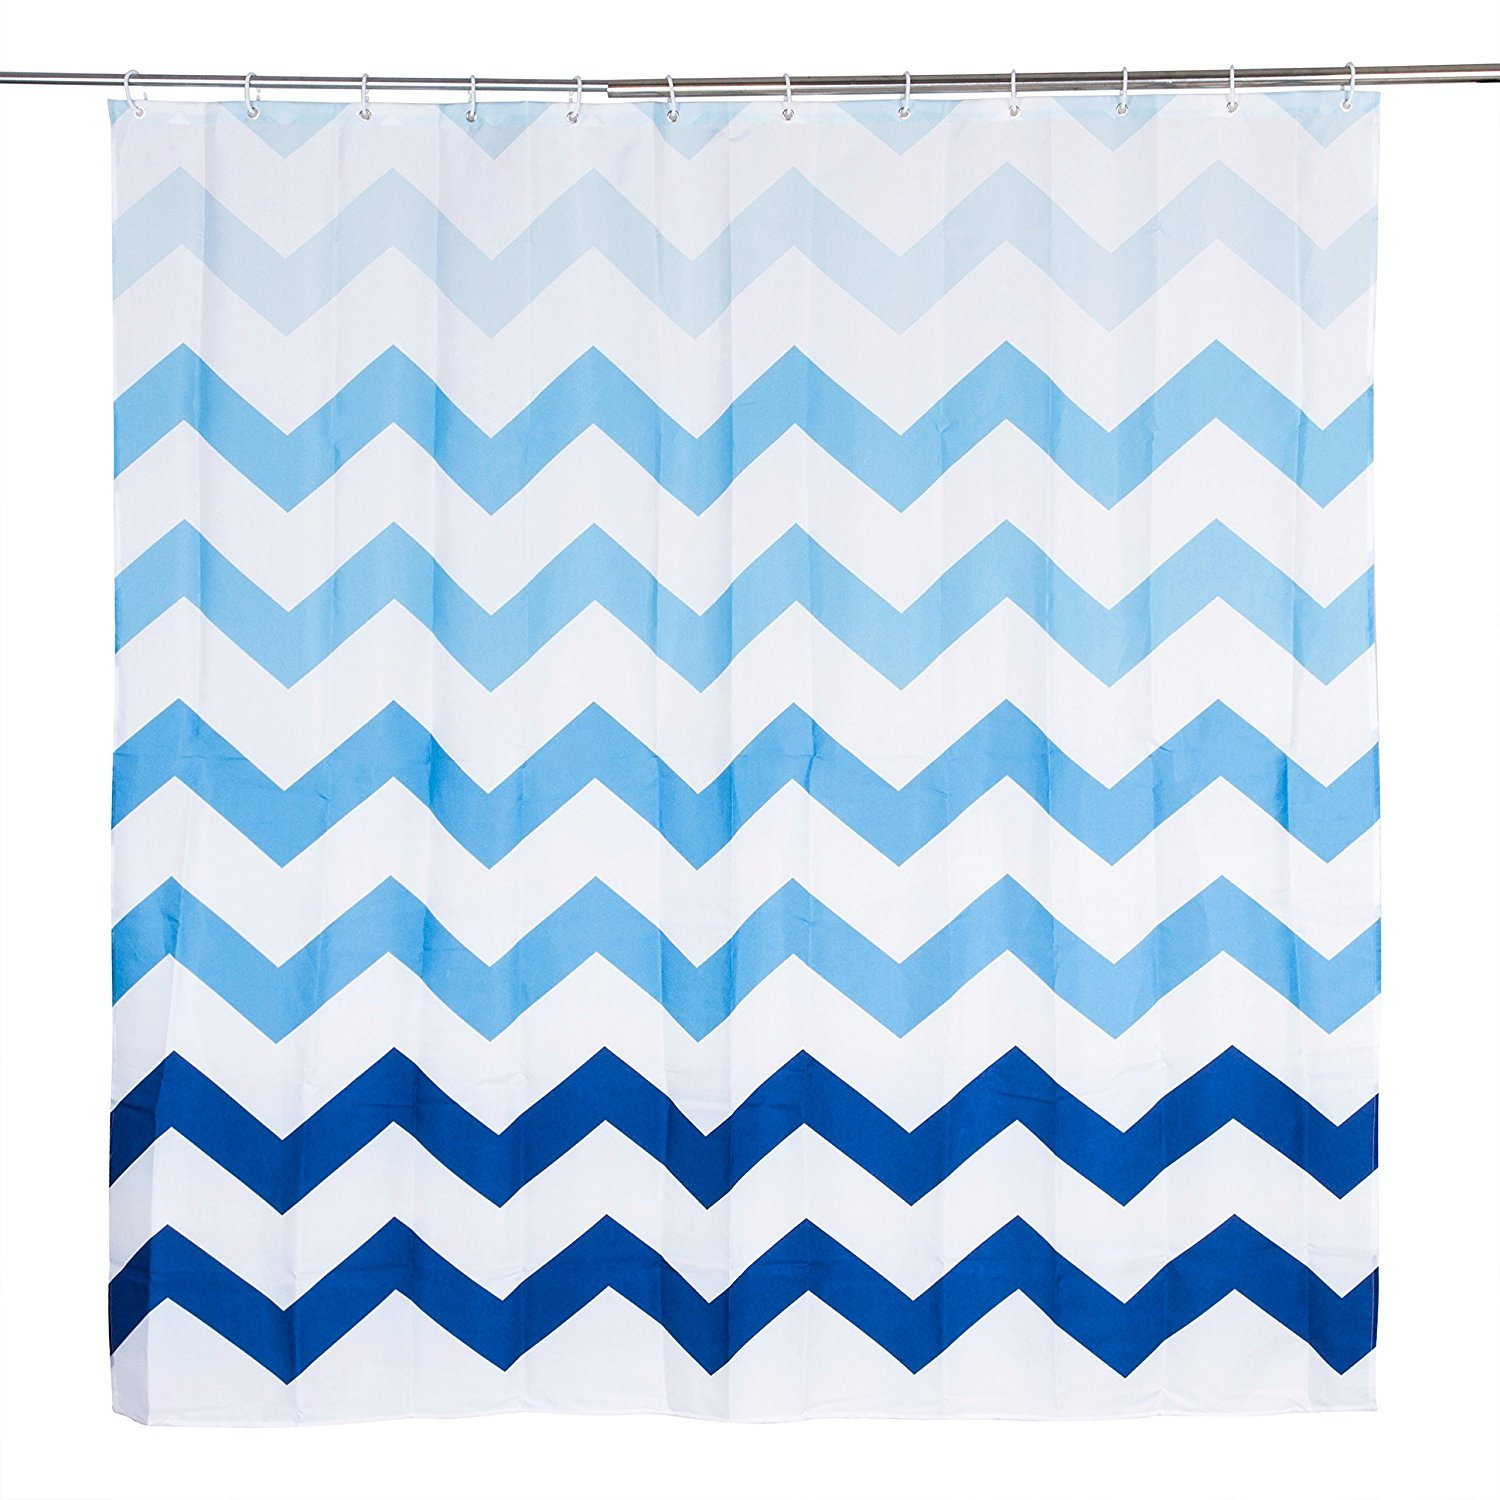 Oceanique Shower Curtain 100% Polyester, Machine Washable, for Everyday Use, Kids, Teens, Extra Bathroom, Main Bathroom Ombre Chevron